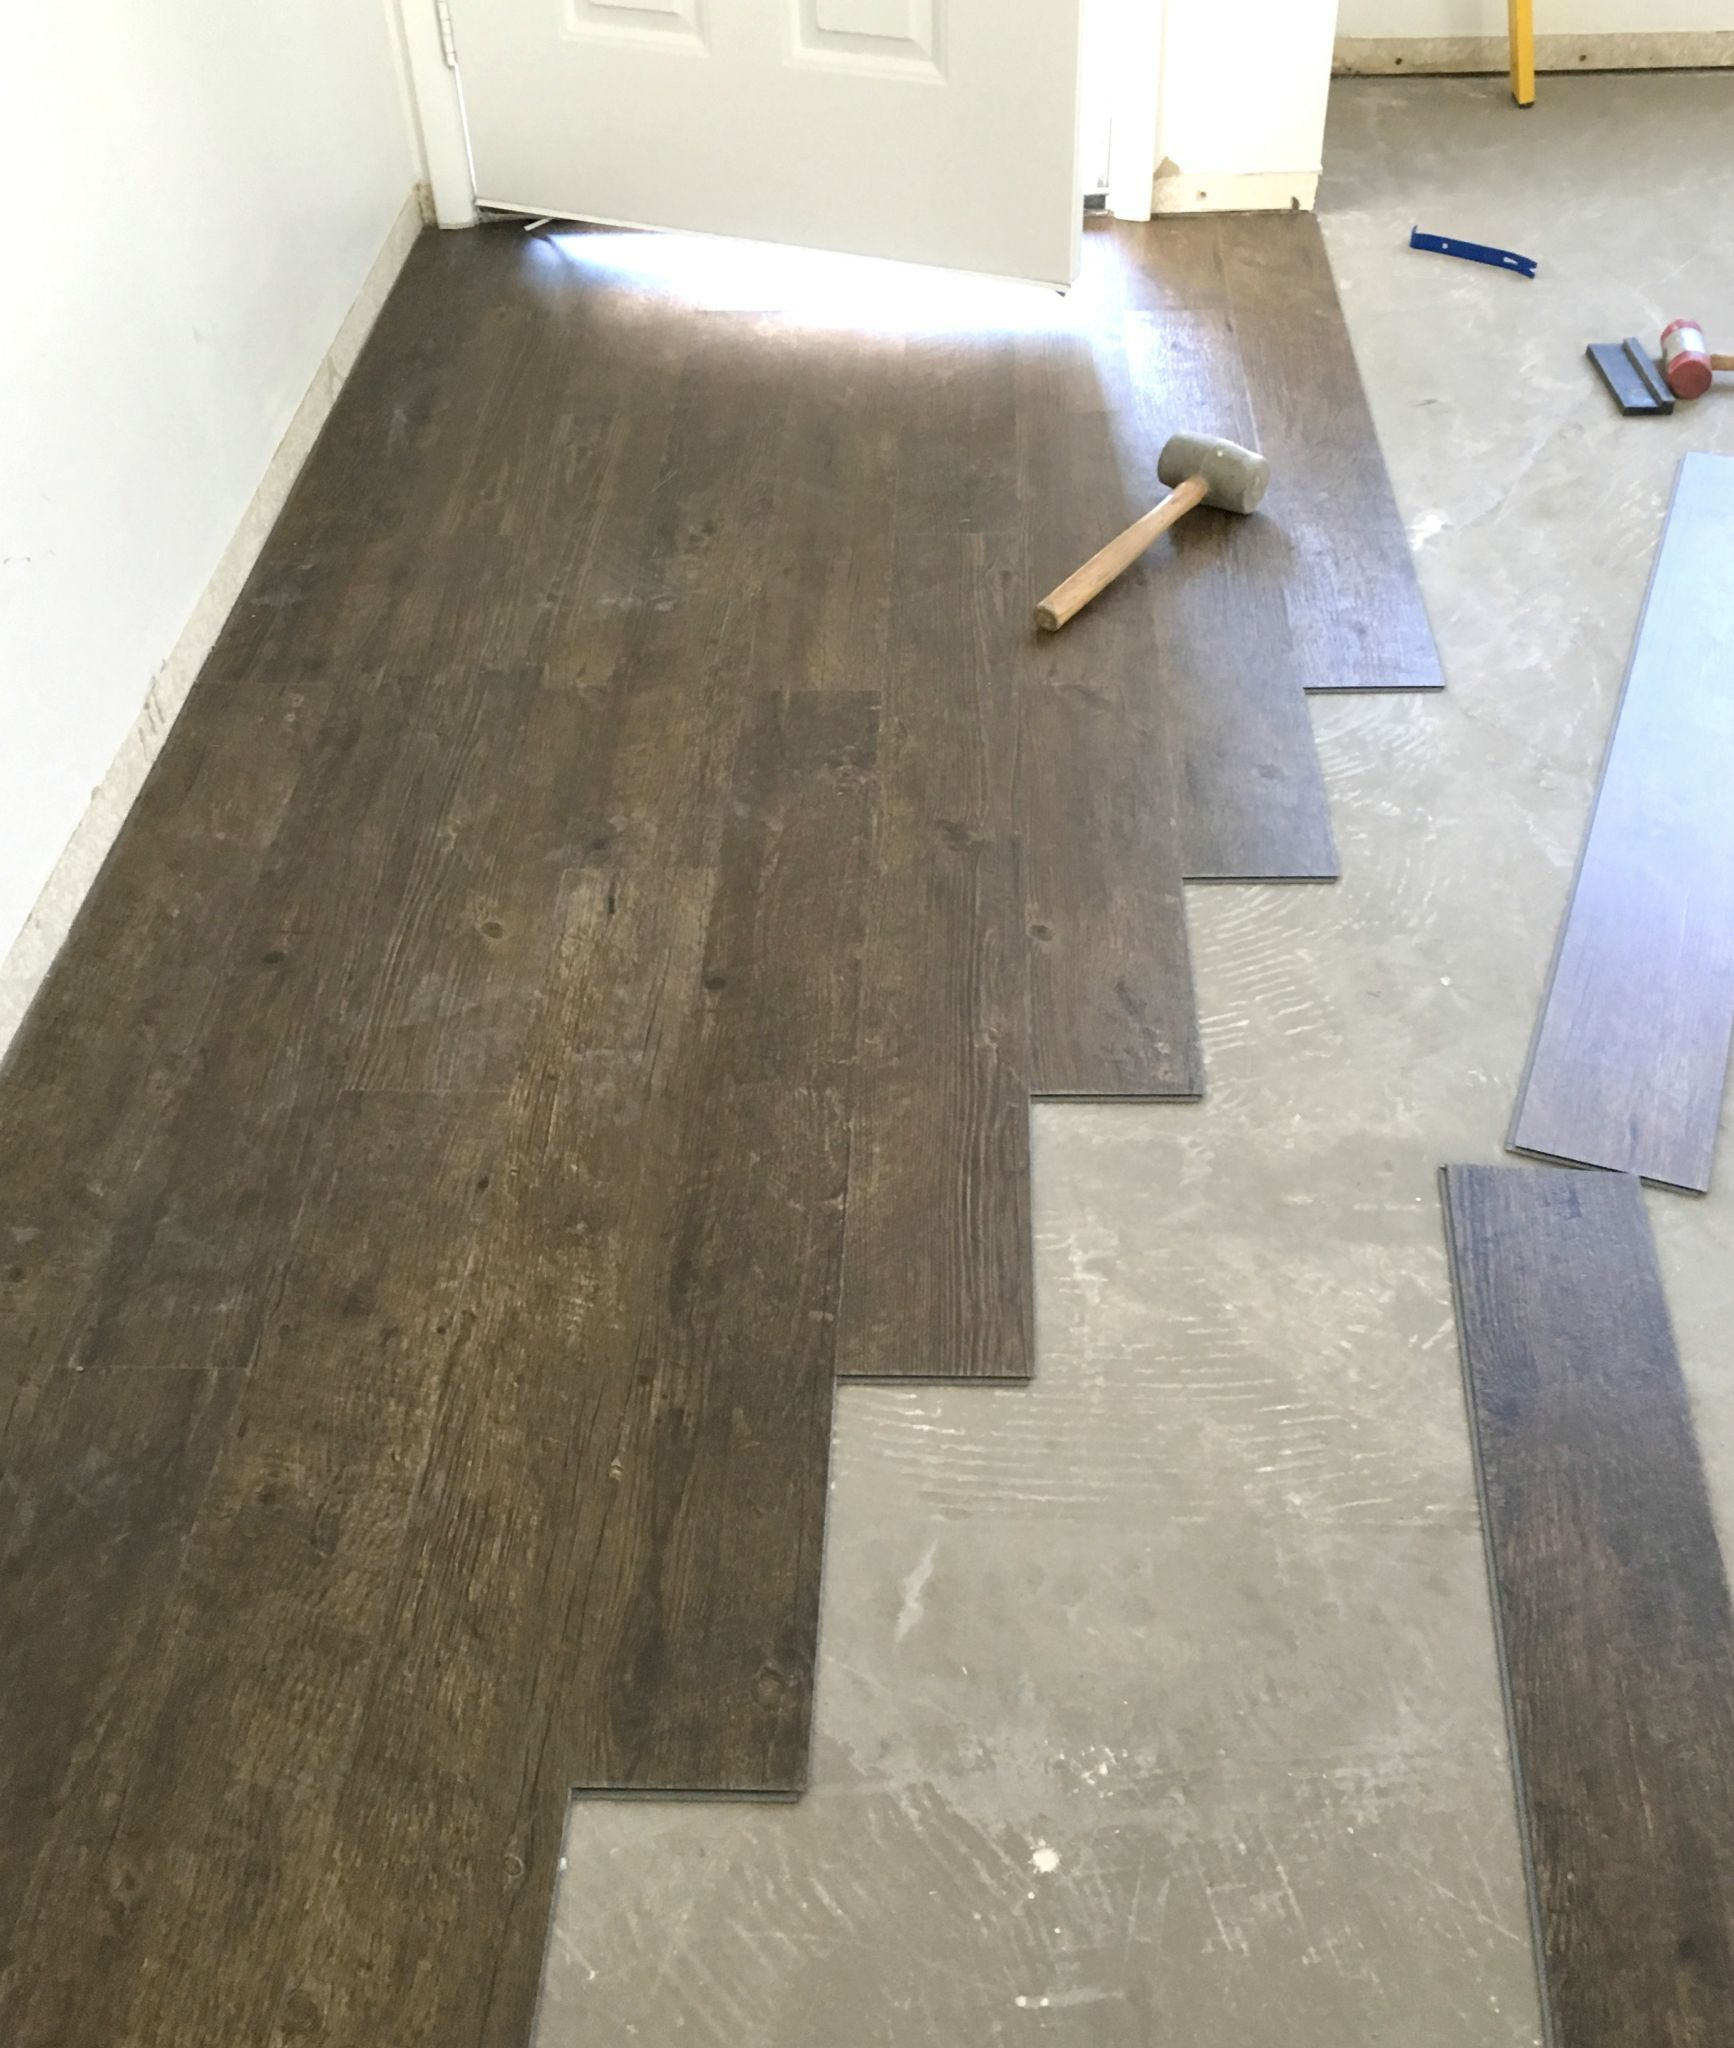 Vinyl Plank Flooring Prep And Installation Build It With